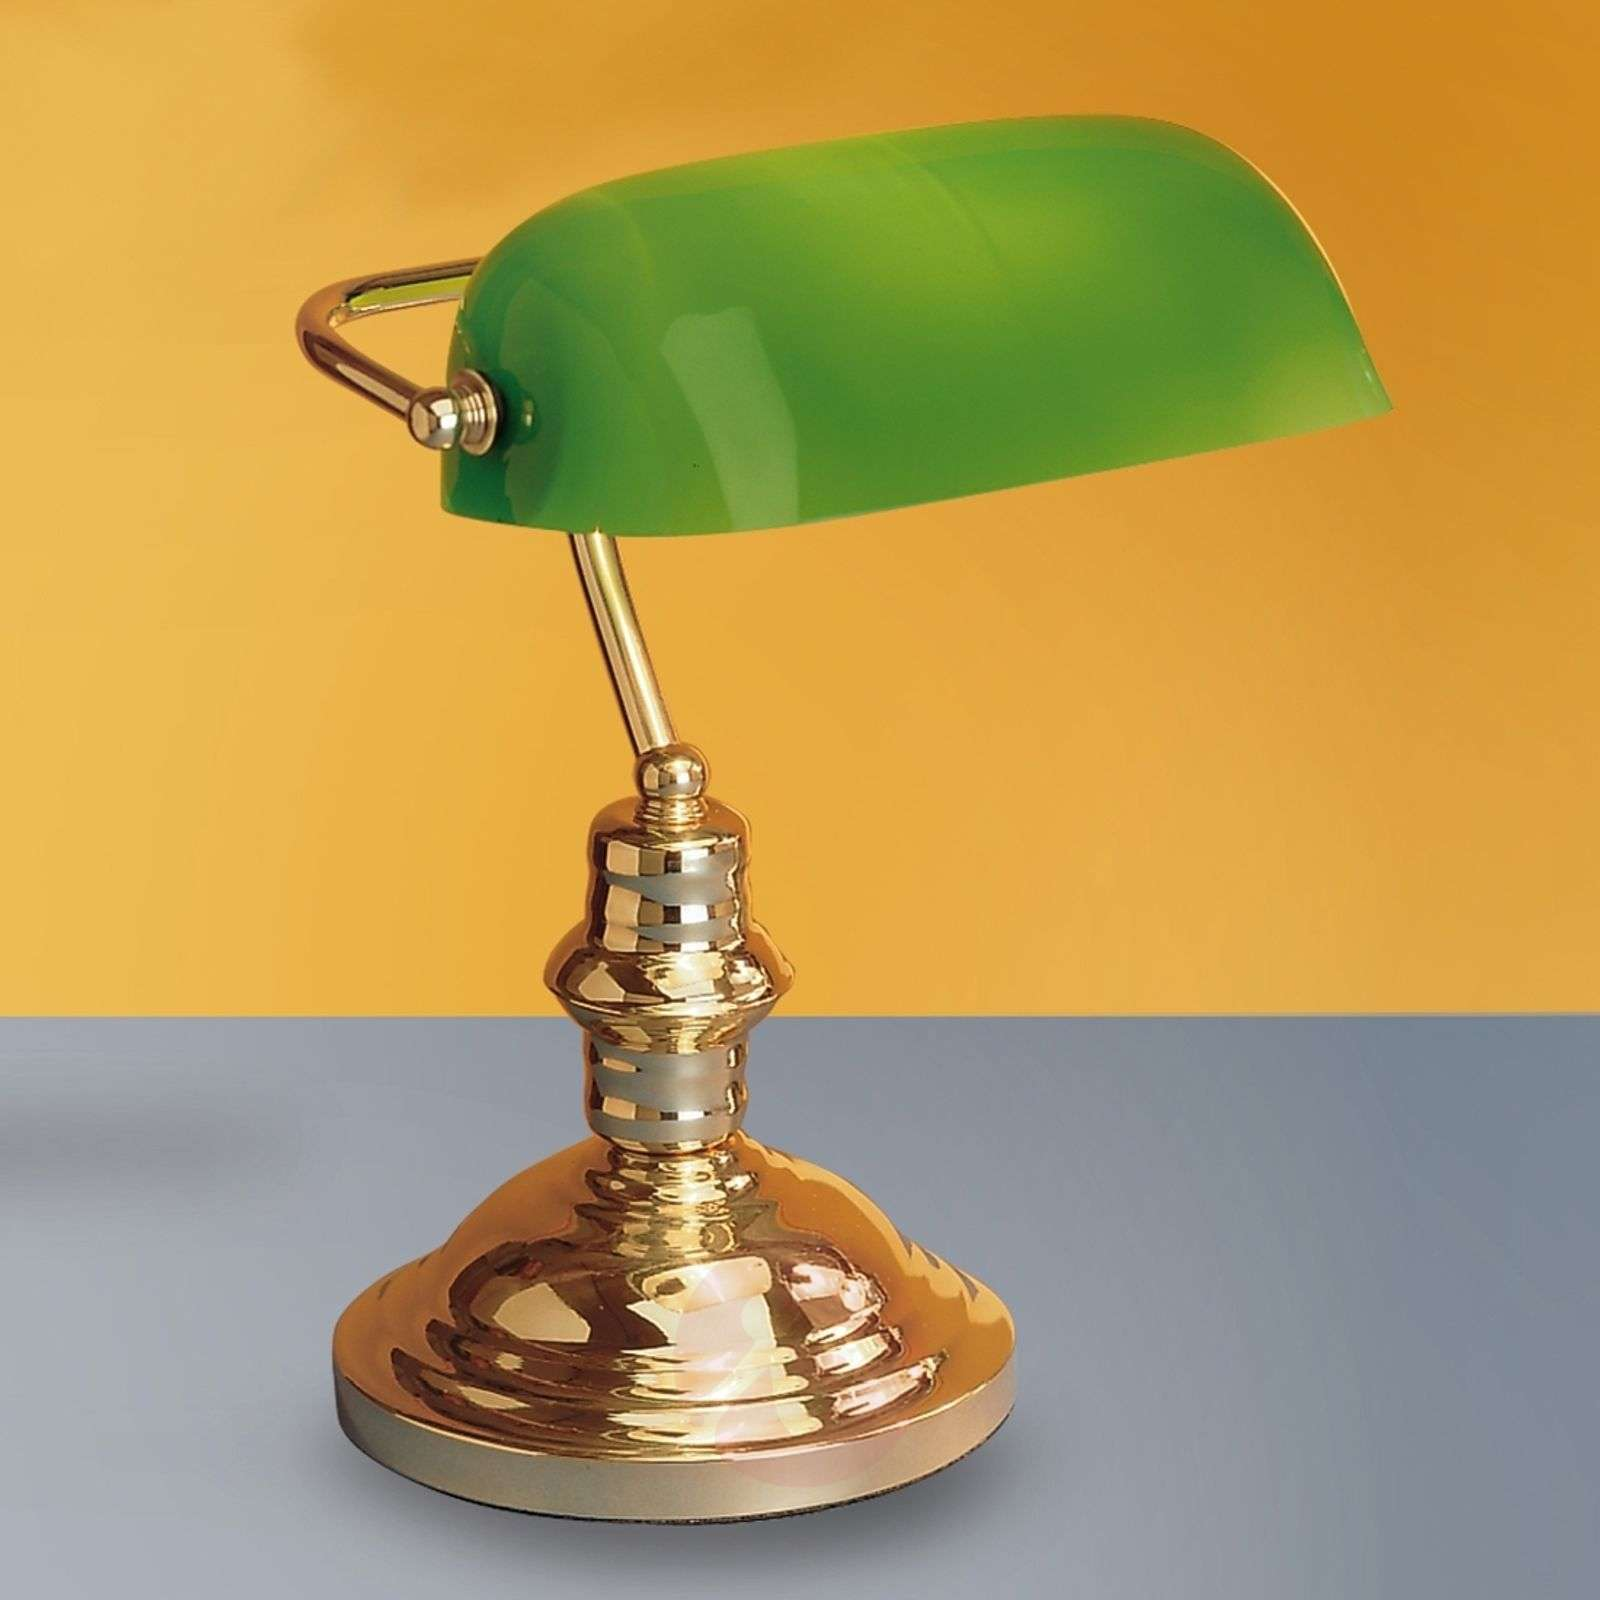 Onella table lamp, green-7253629-01